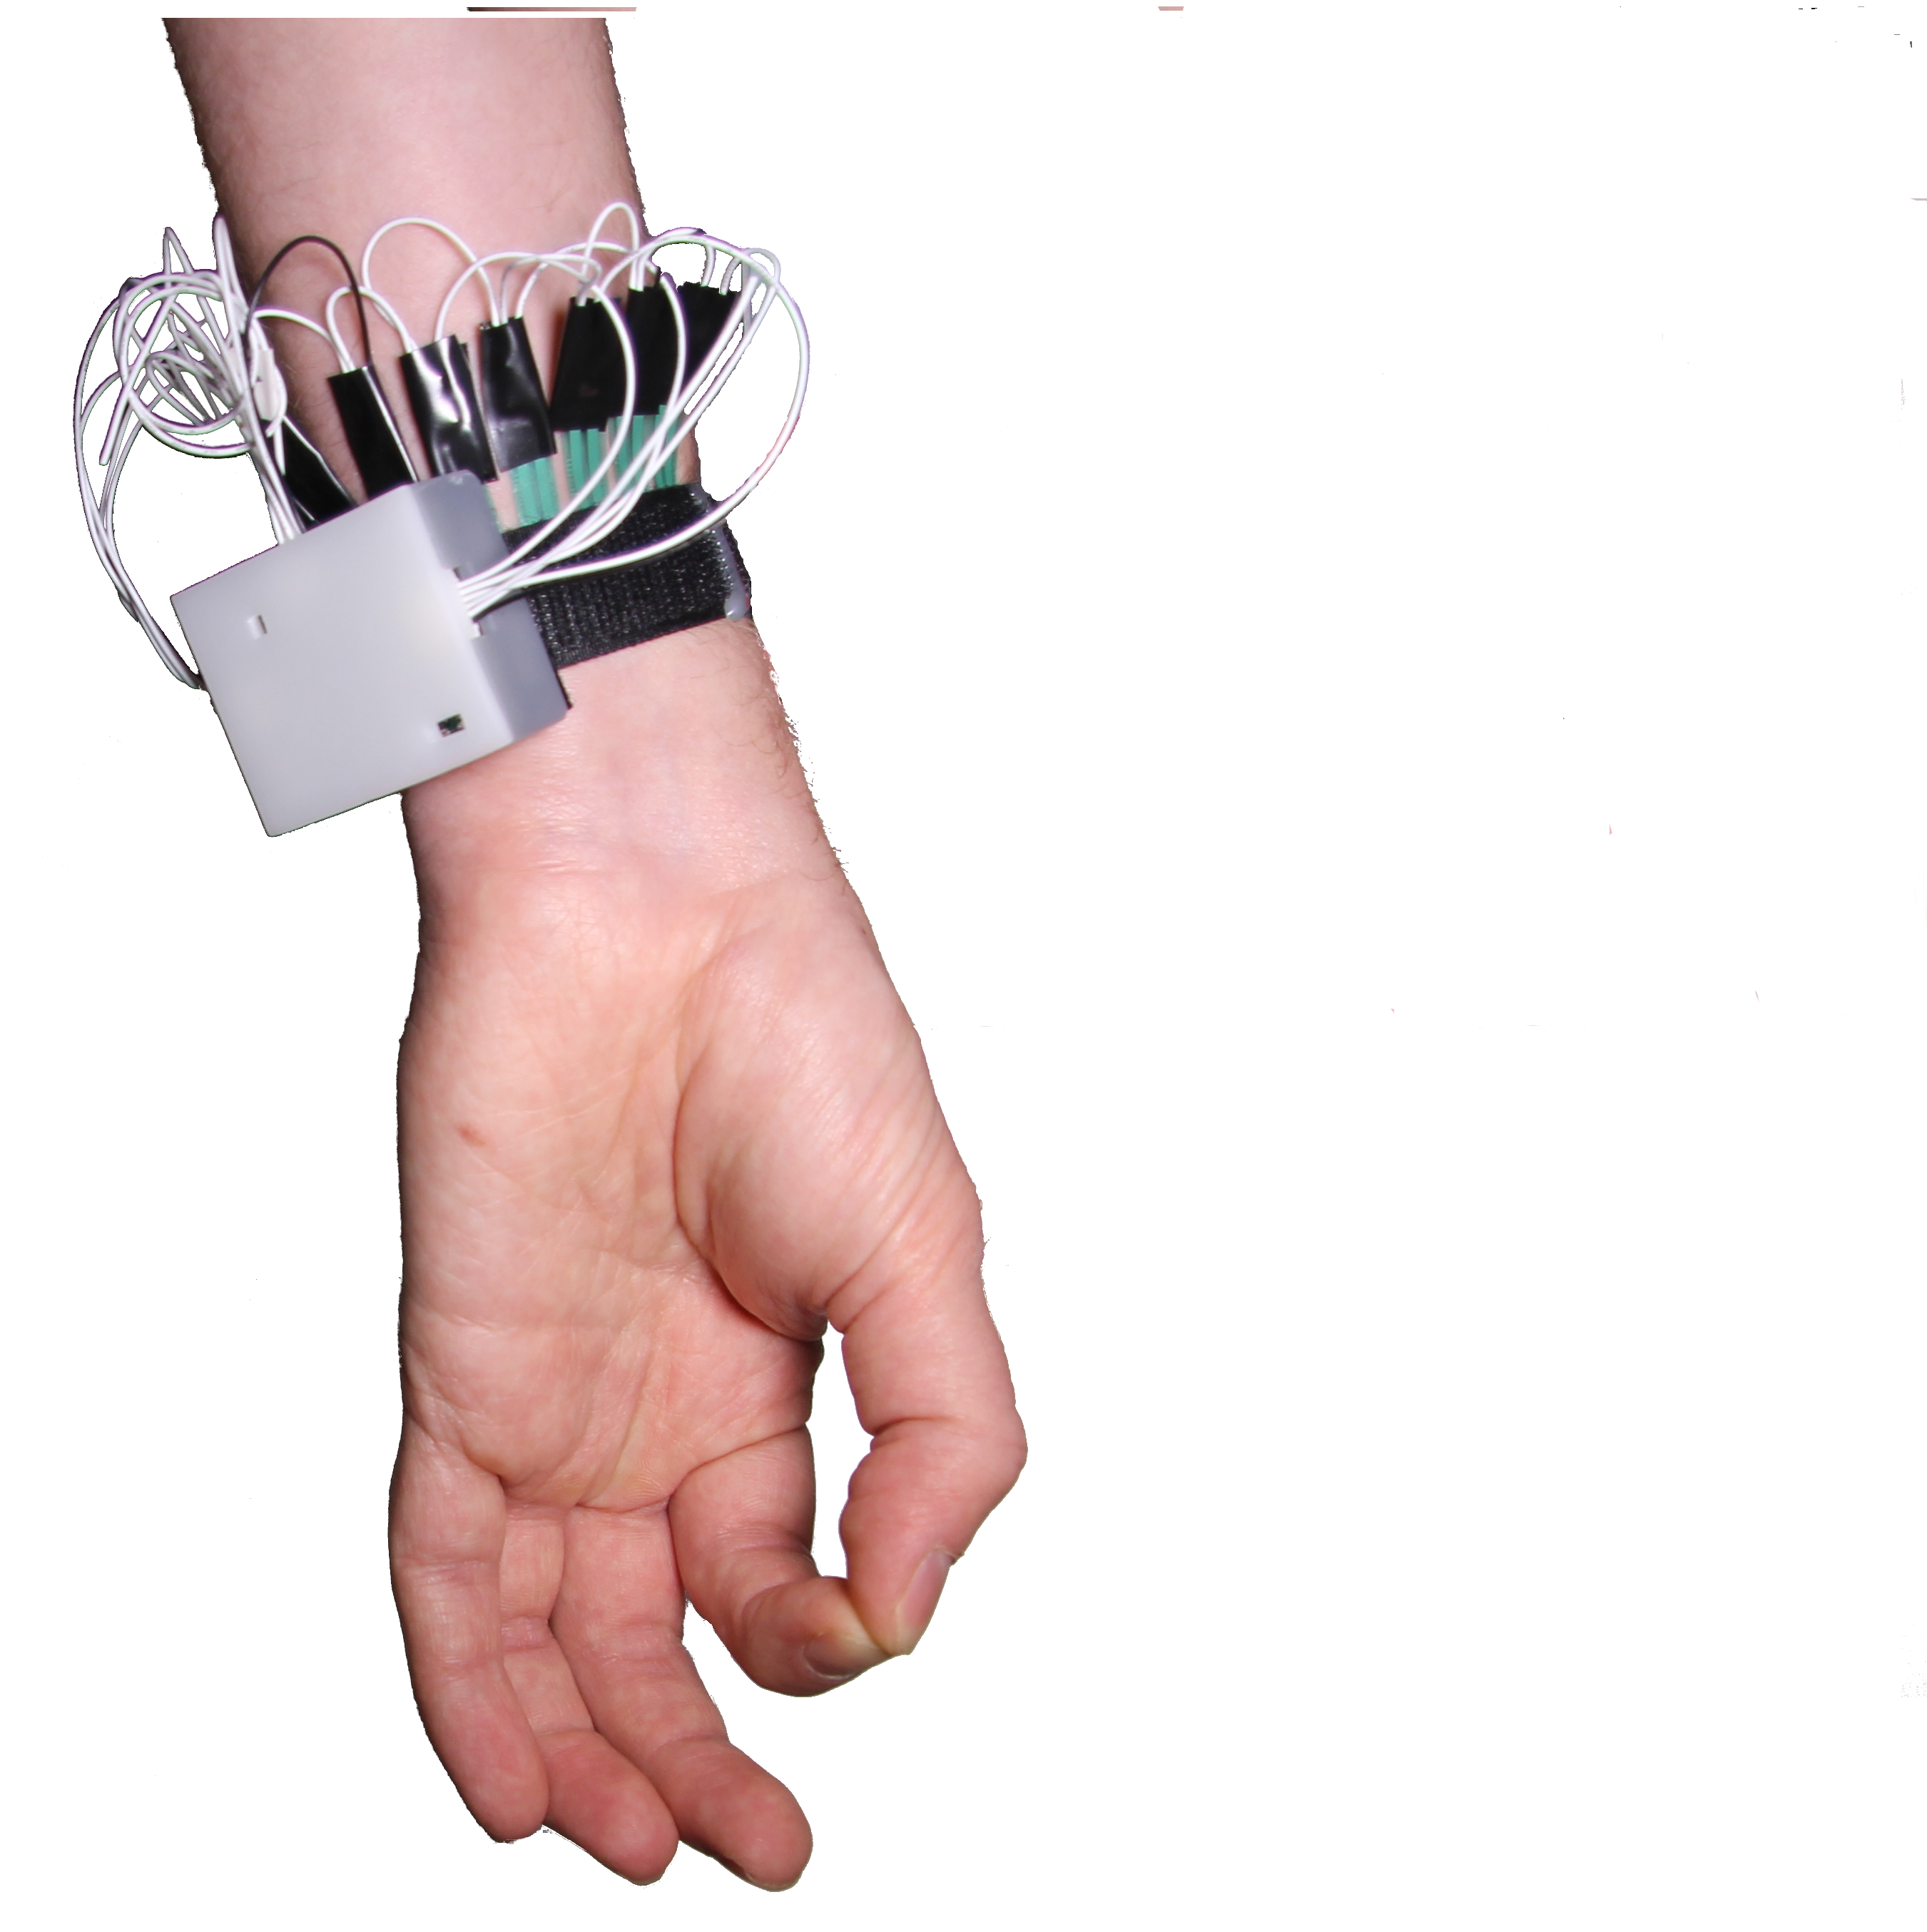 Device on hand